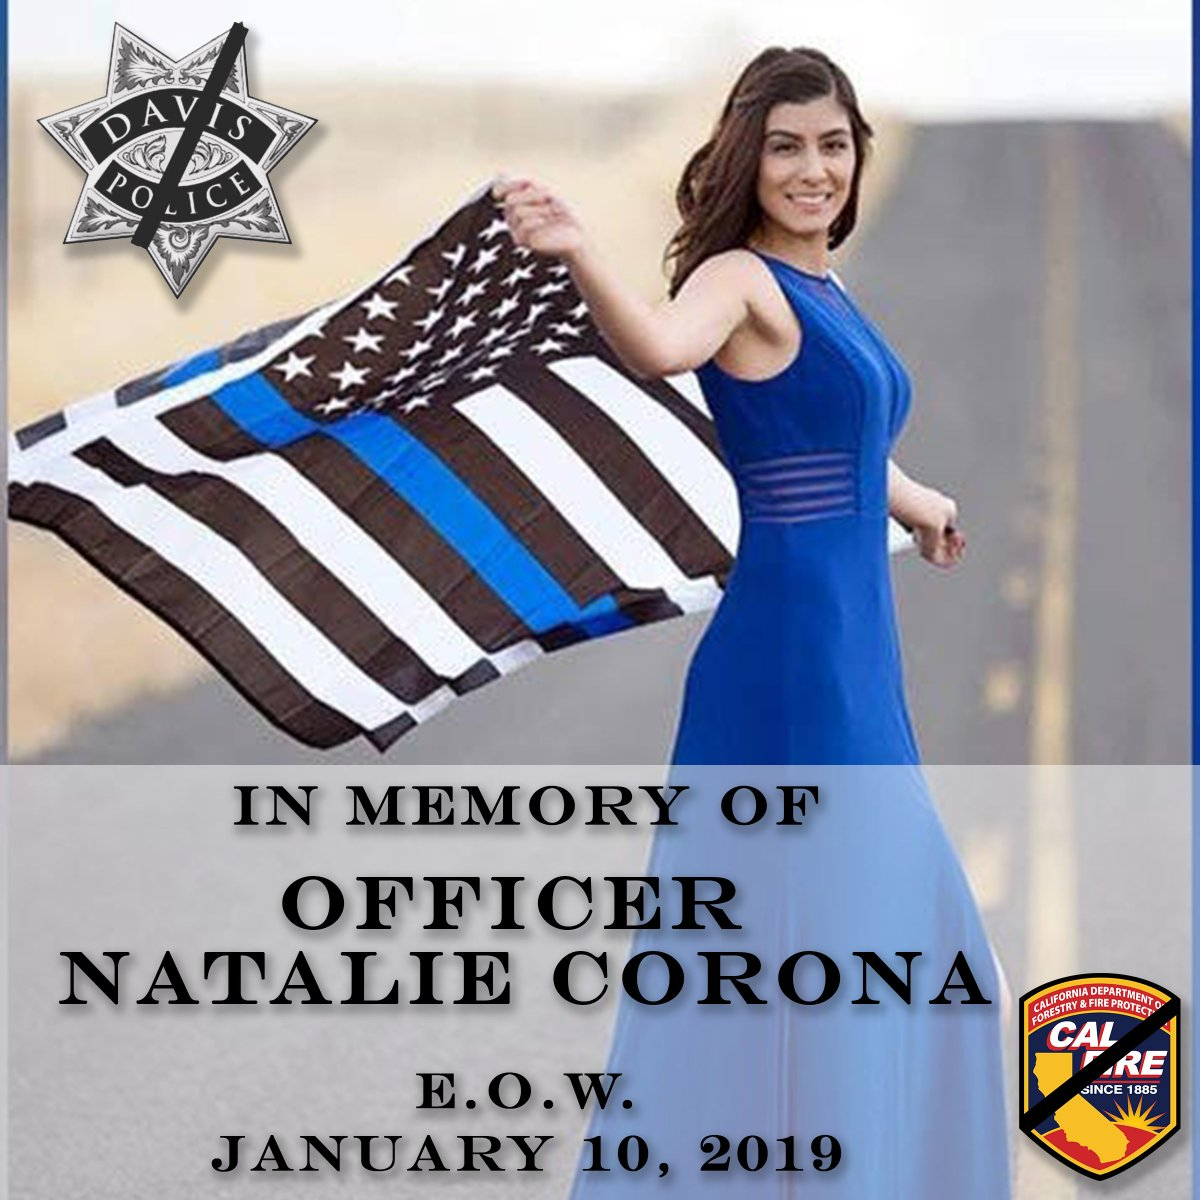 Please join us in keeping the Davis Police Department and the friends and family of Officer Natalie Corona in your thoughts as we mourn this heartbreaking loss. <br>http://pic.twitter.com/PBWXQMzERb